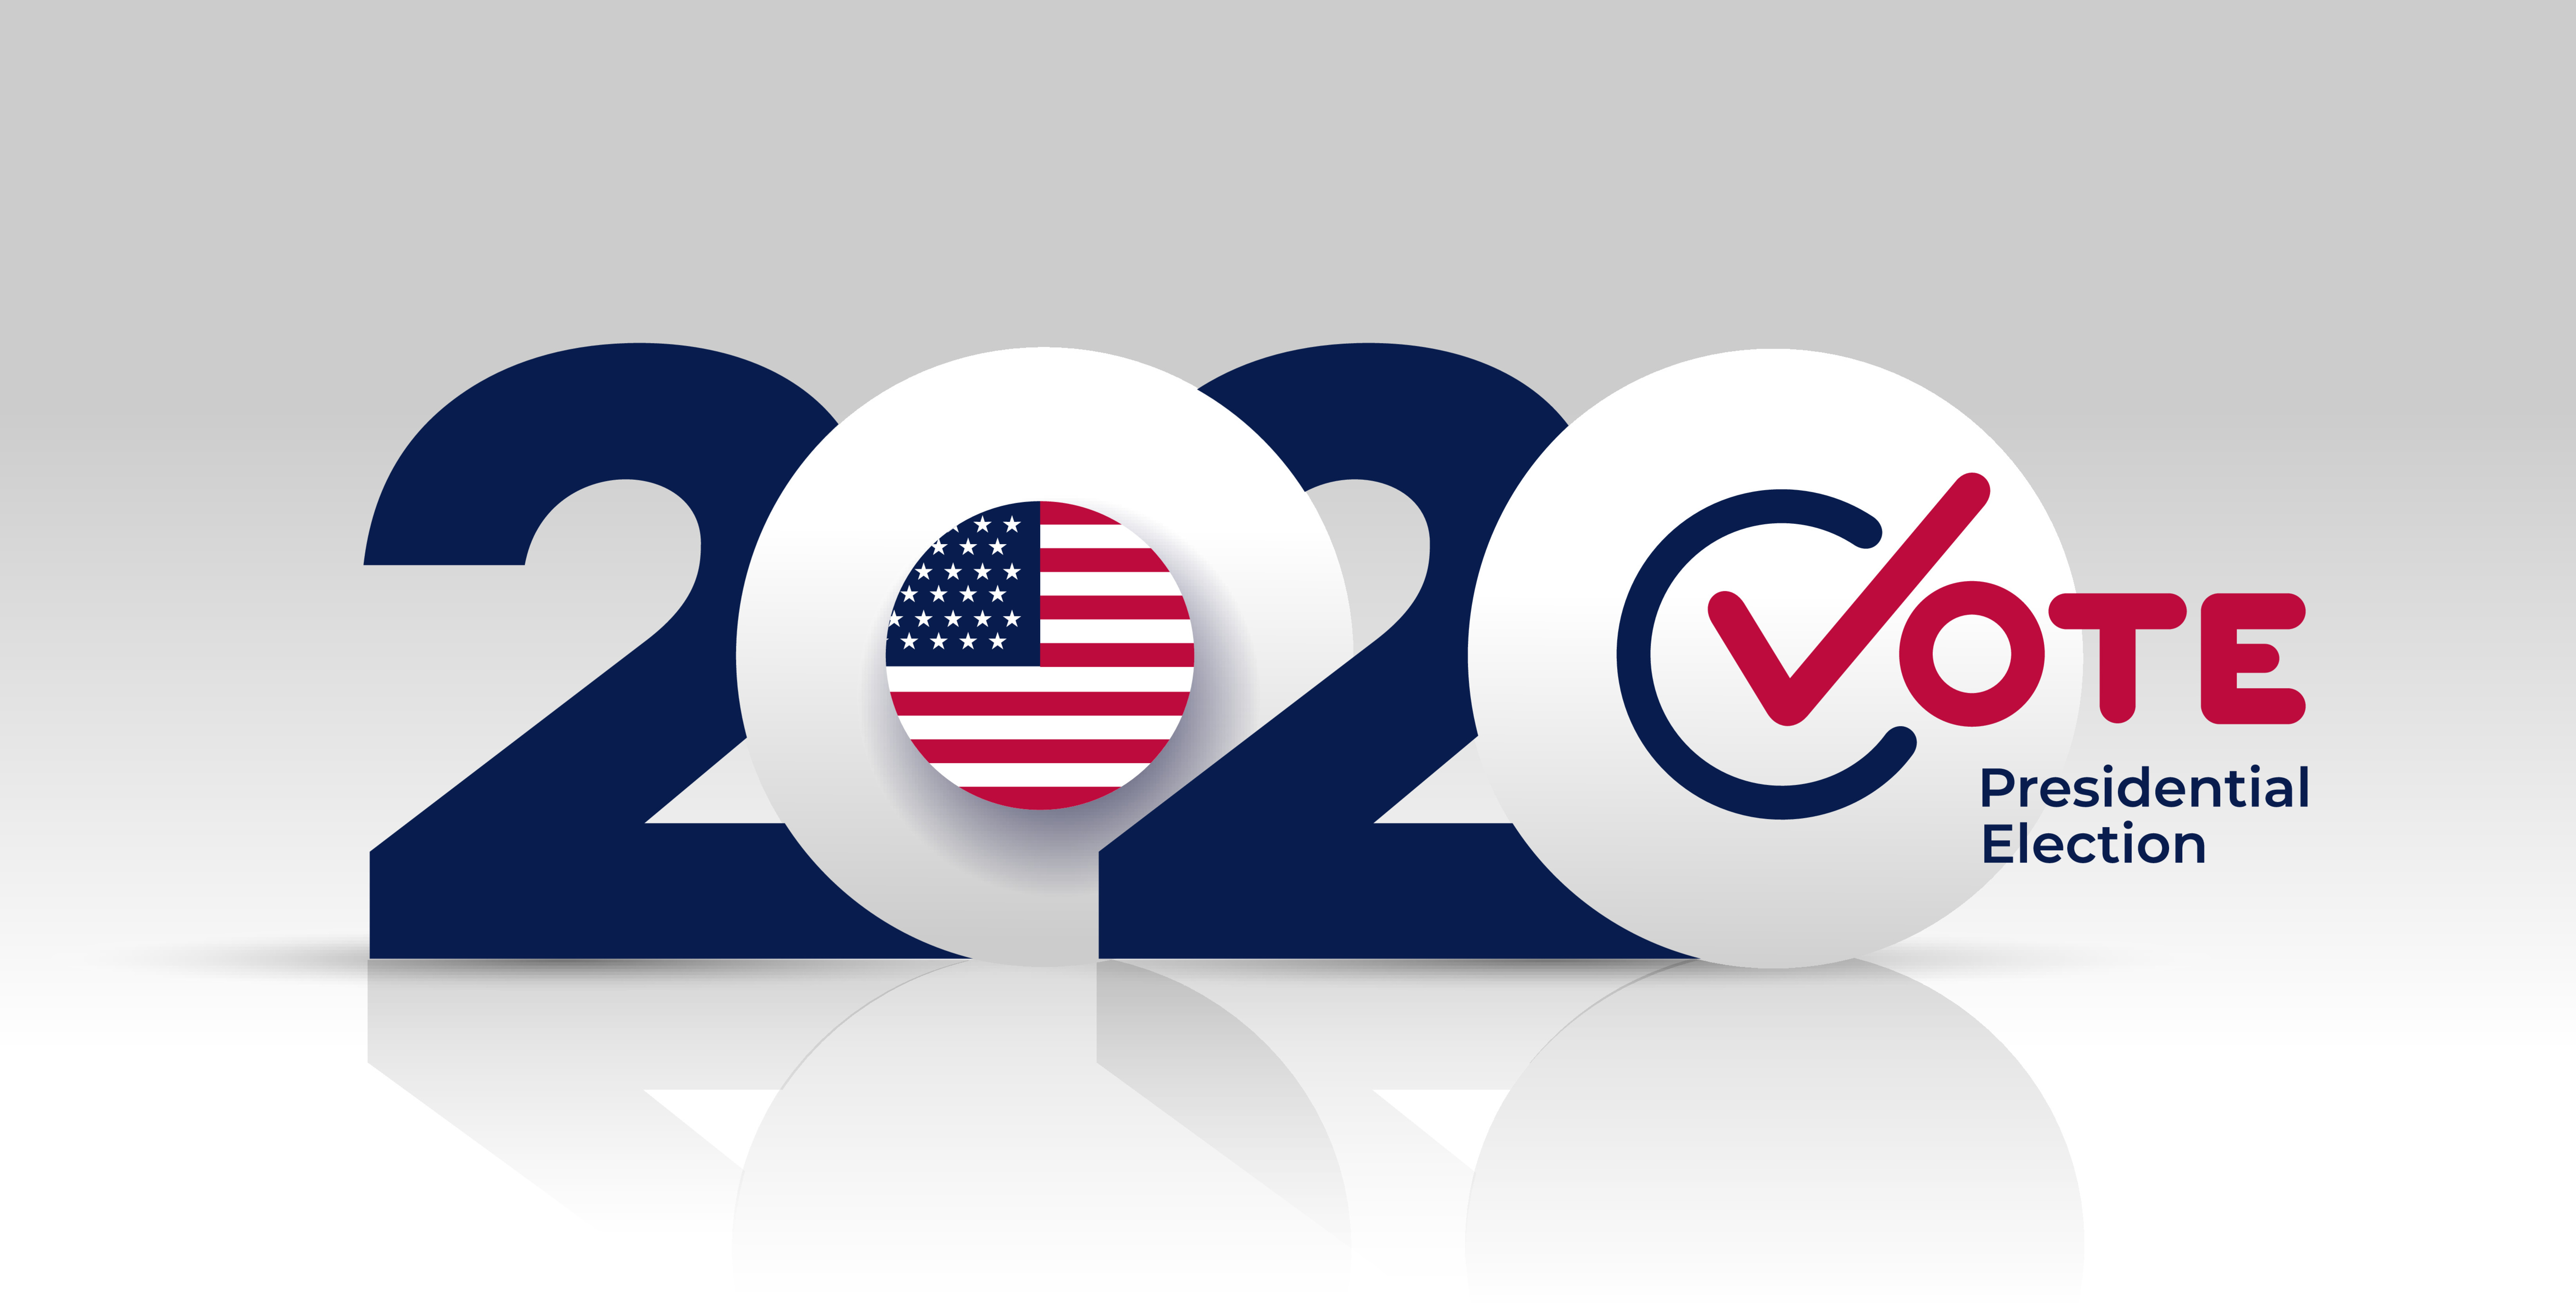 2020 Vote US Presidential election. With US flag on neutral background